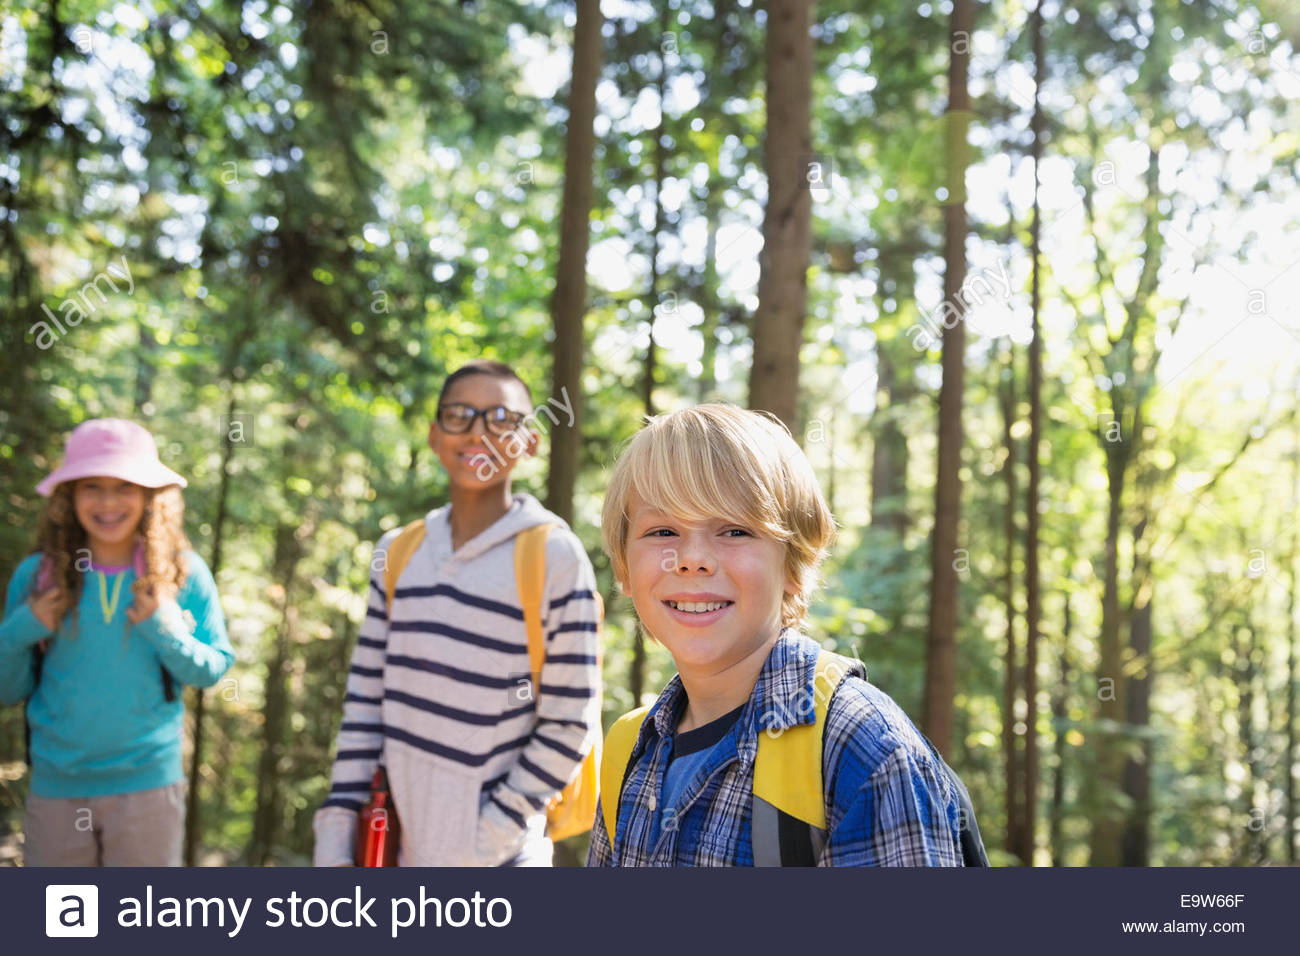 Portrait of smiling boys and girl in woods - Stock Image